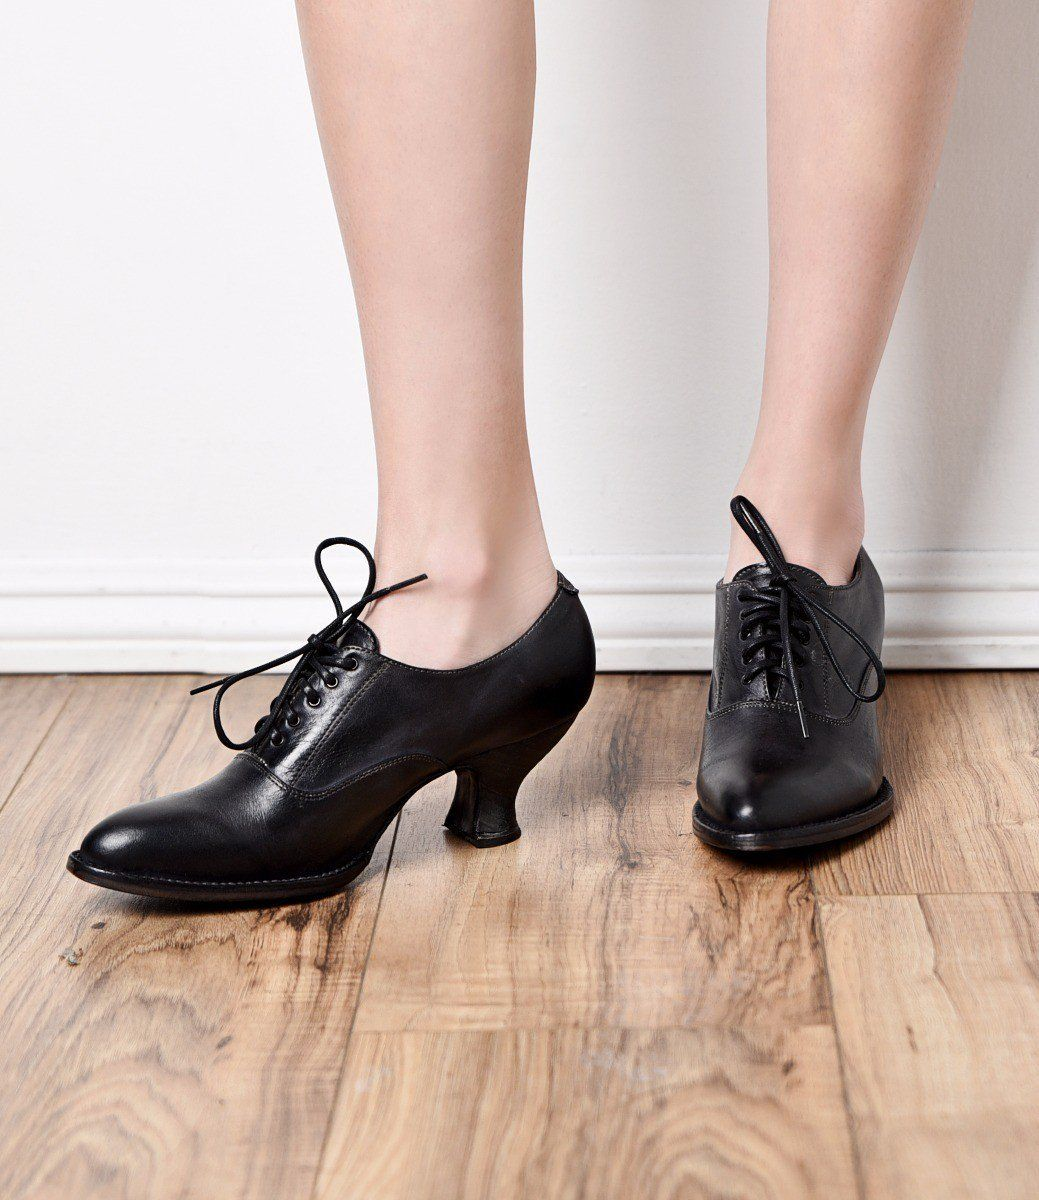 e86068f9bccc New Authentic Victorian Boots for Women Victorian Style Leather Lace-Up  Black Shoes  195.00 AT